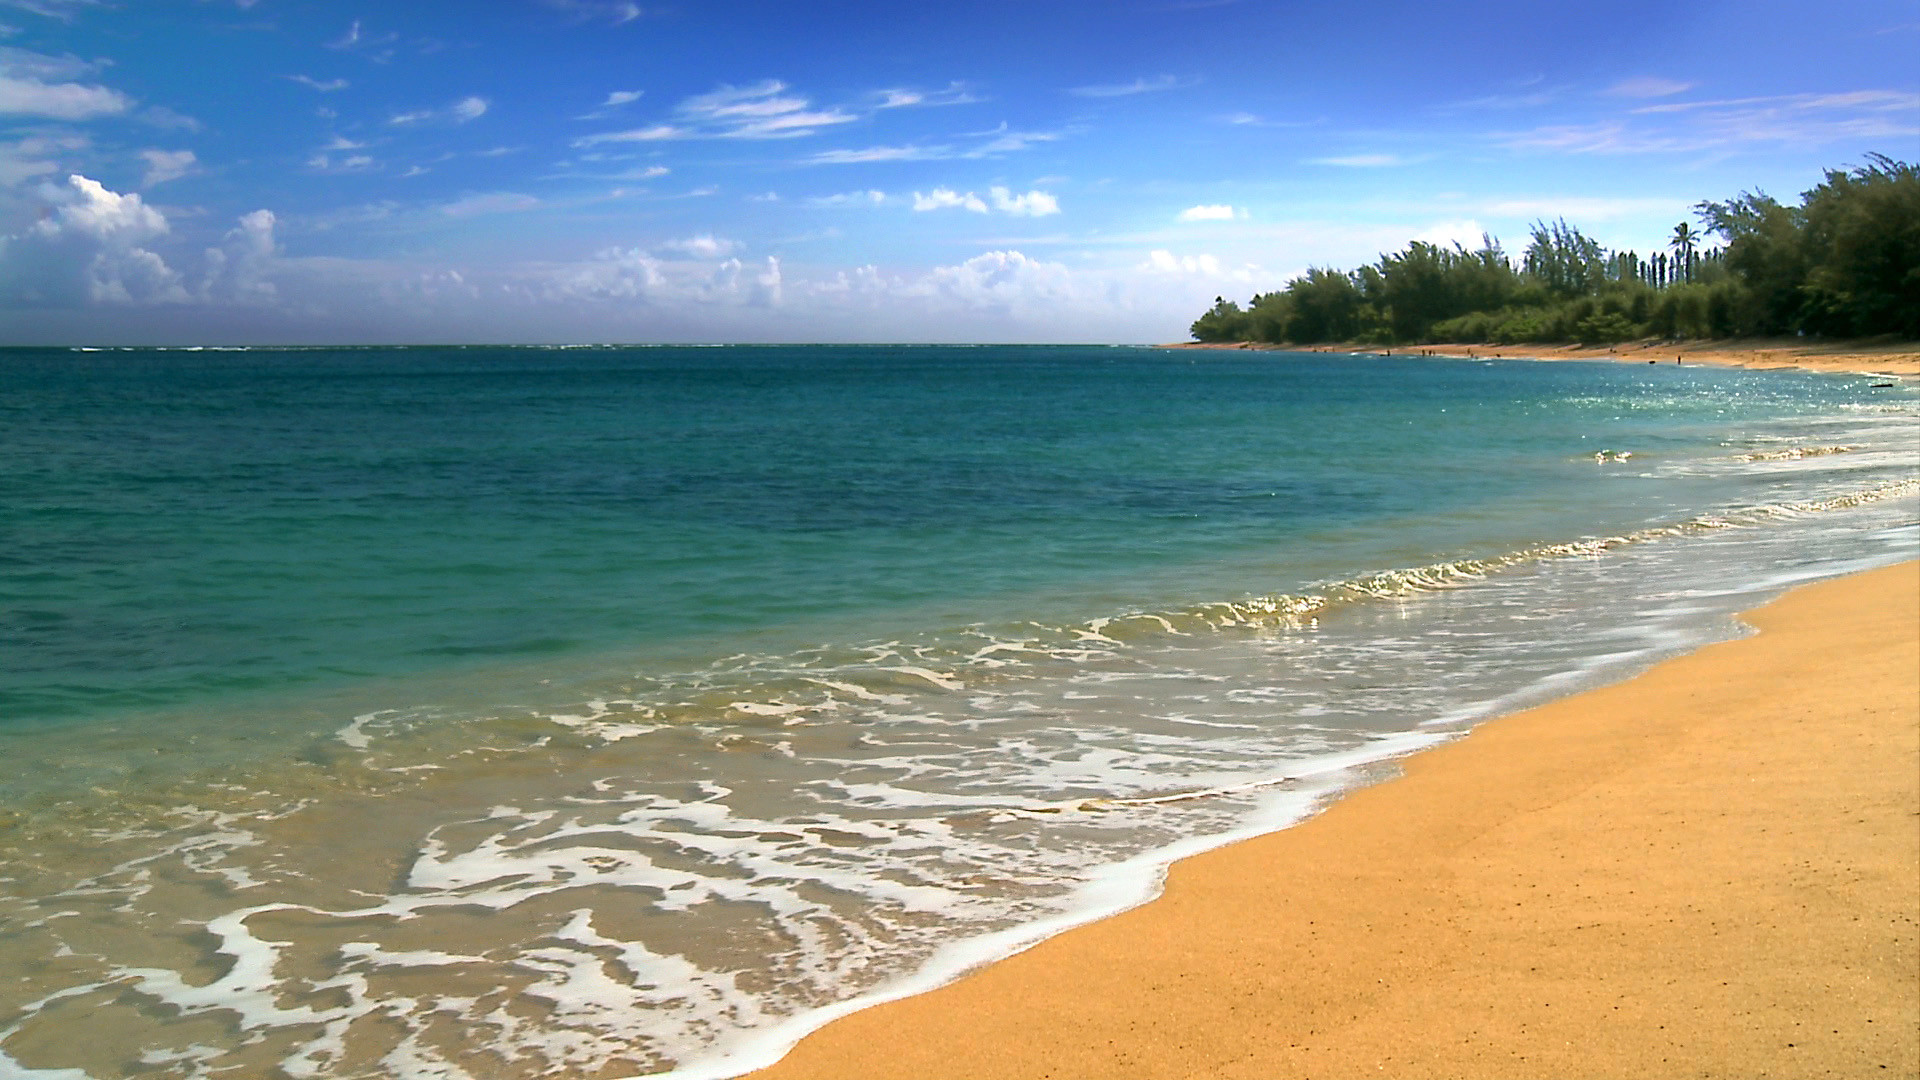 1920x1080 beach wallpapers hawaii beach hd wallpapers hawaii beach hd wallpapers